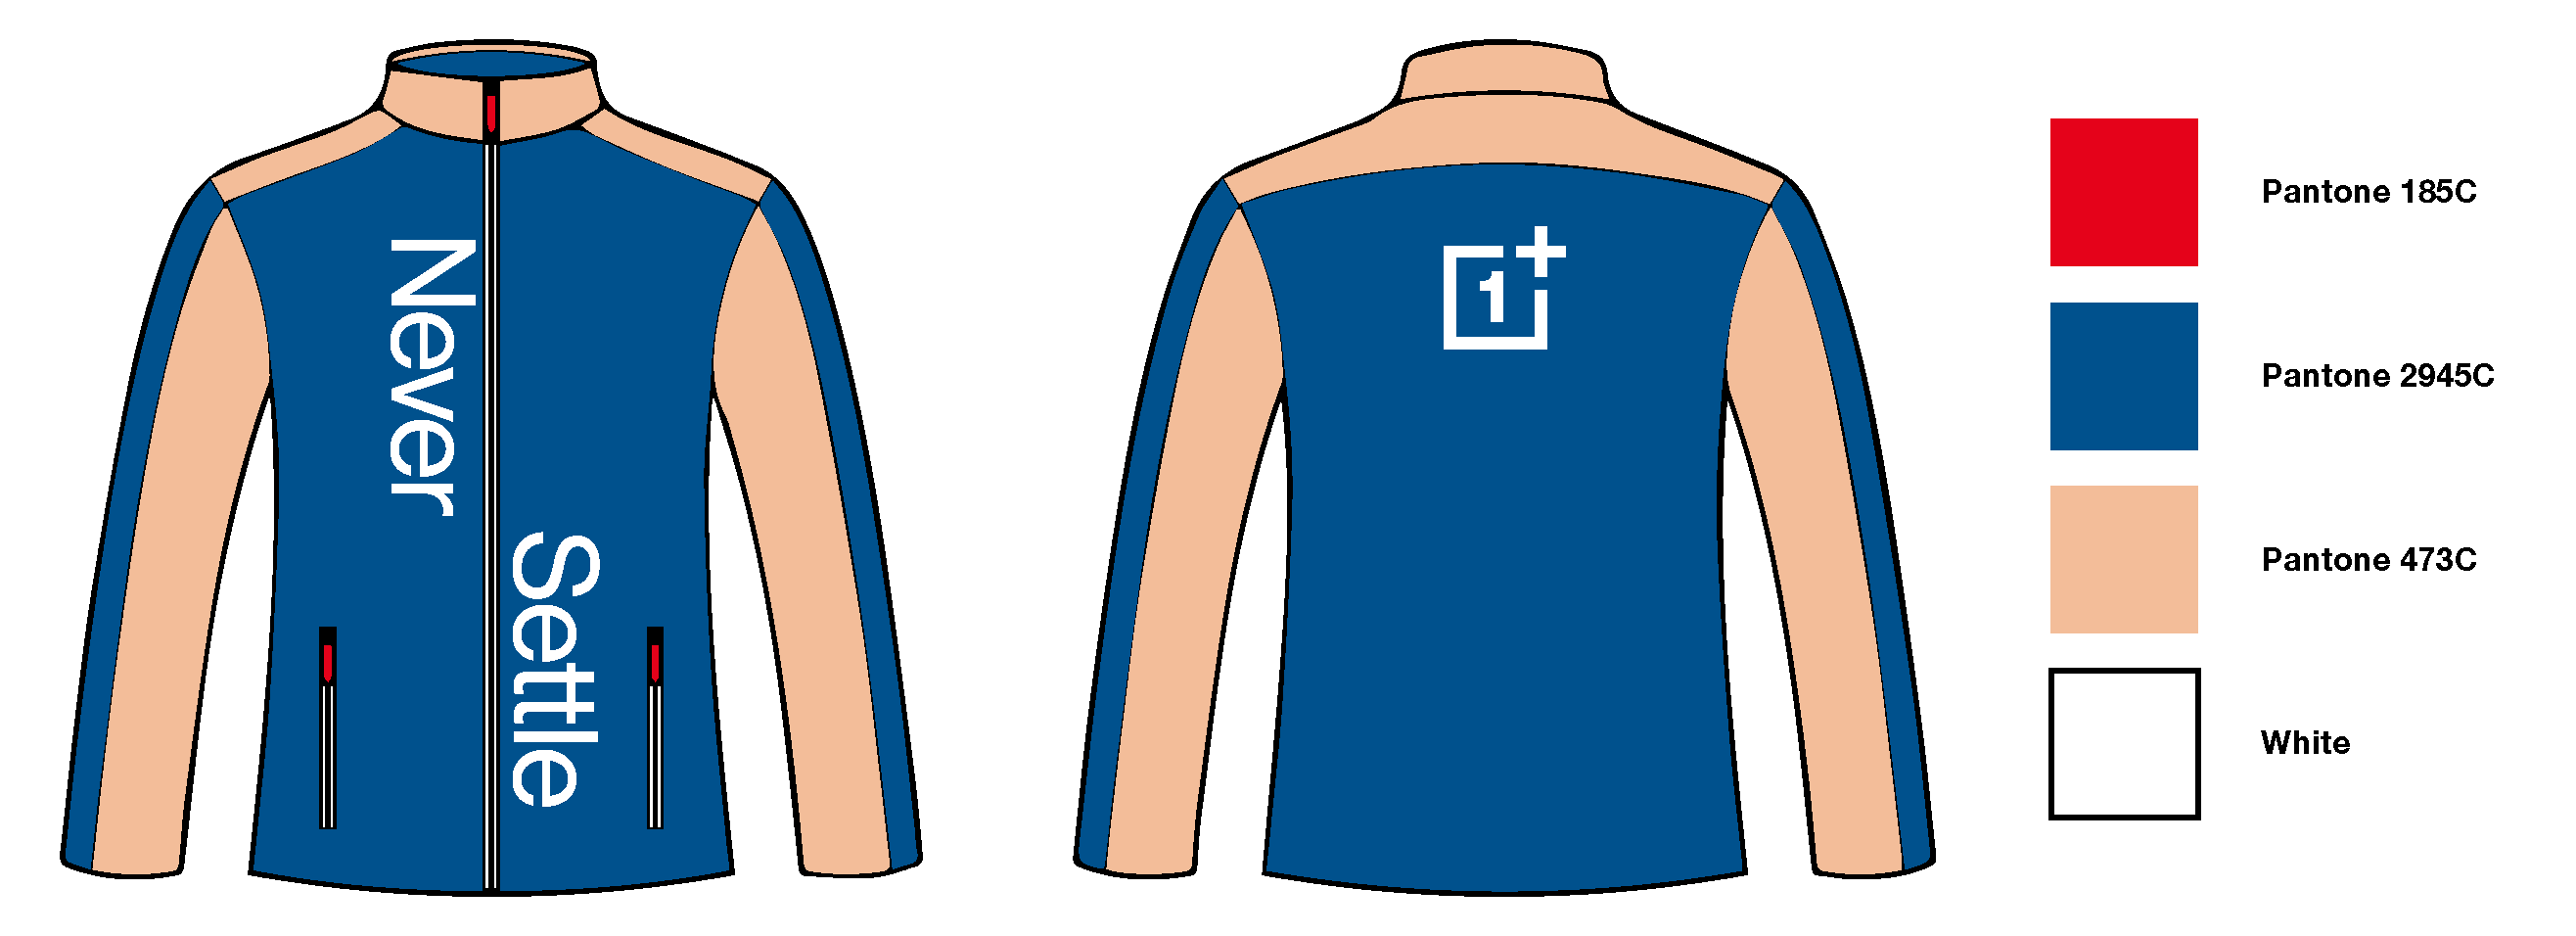 OnePlus-jacket-templates (ss76126) Peach on Blue (2).png